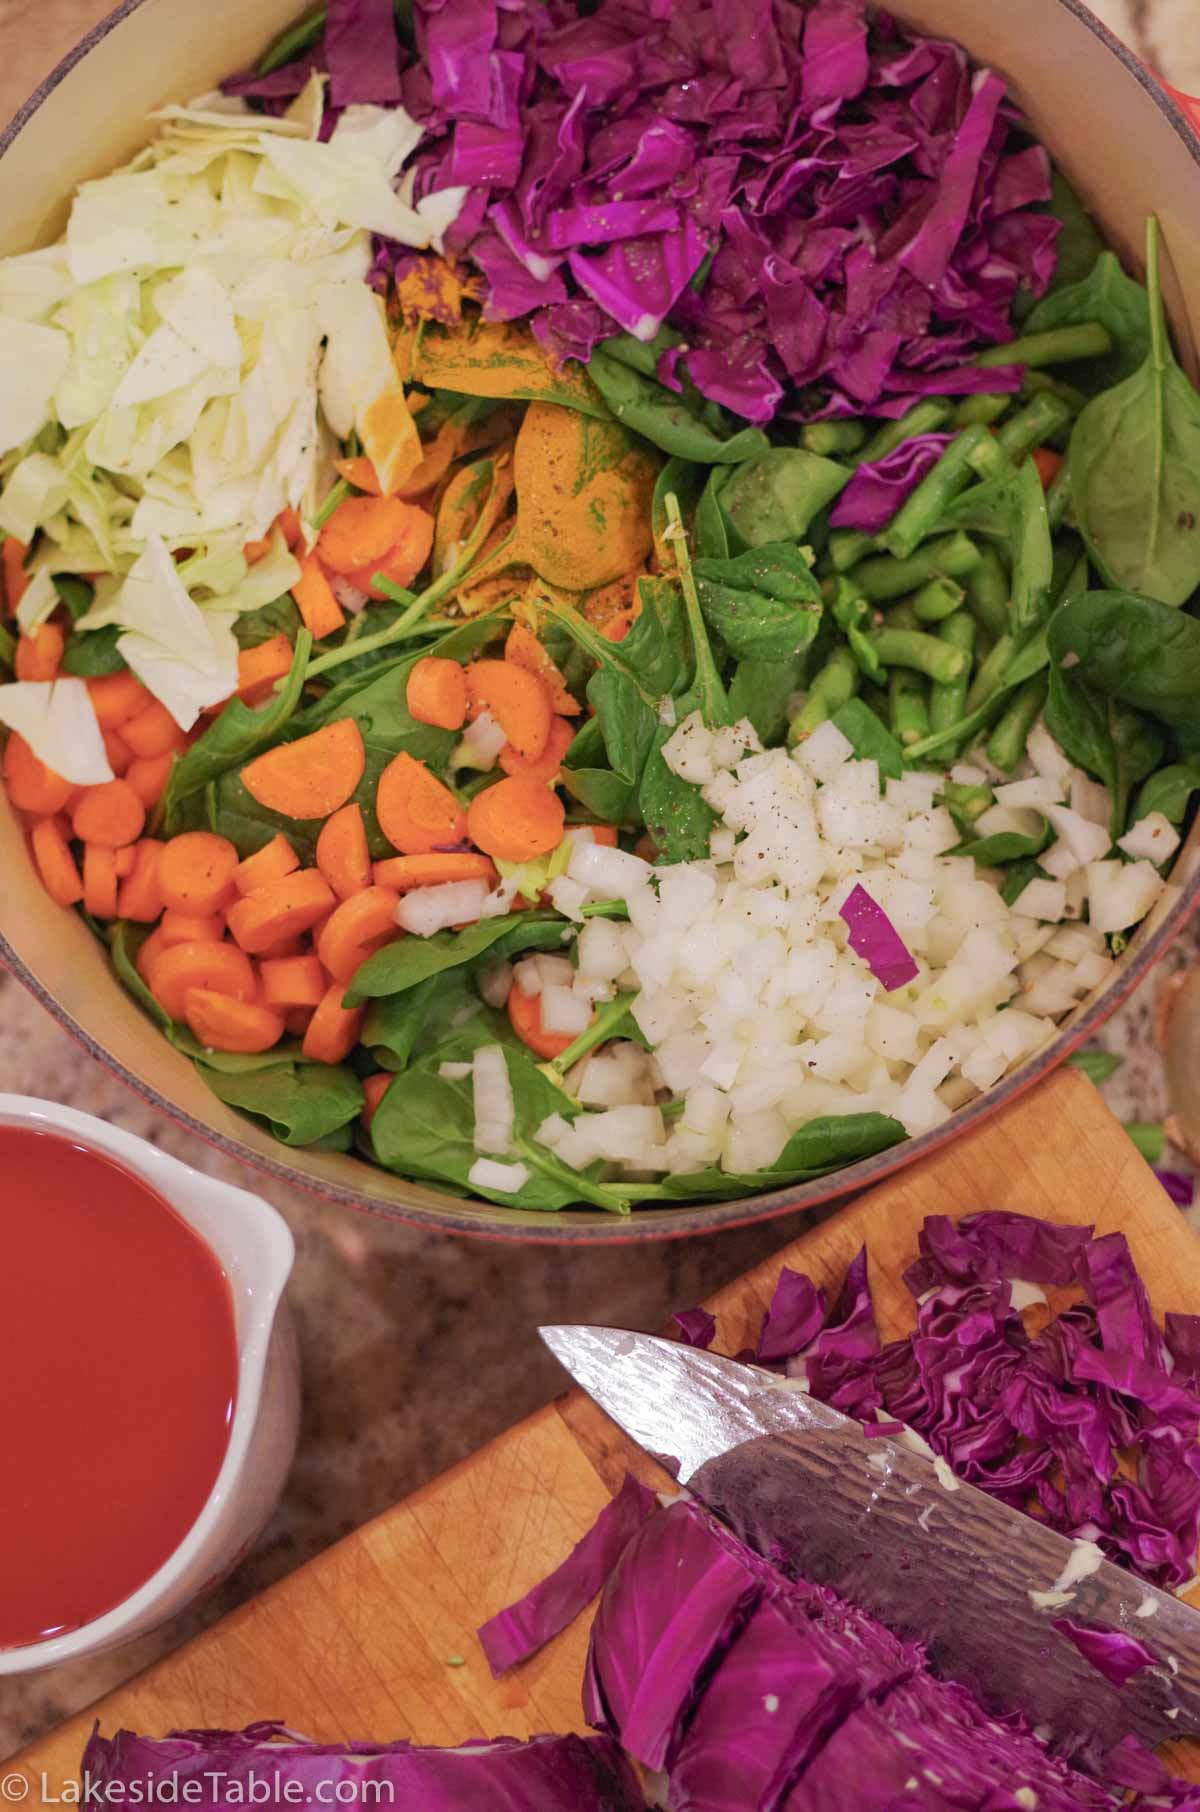 soup pot filled with purple cabbage, white onions, orange carrots, green herbs